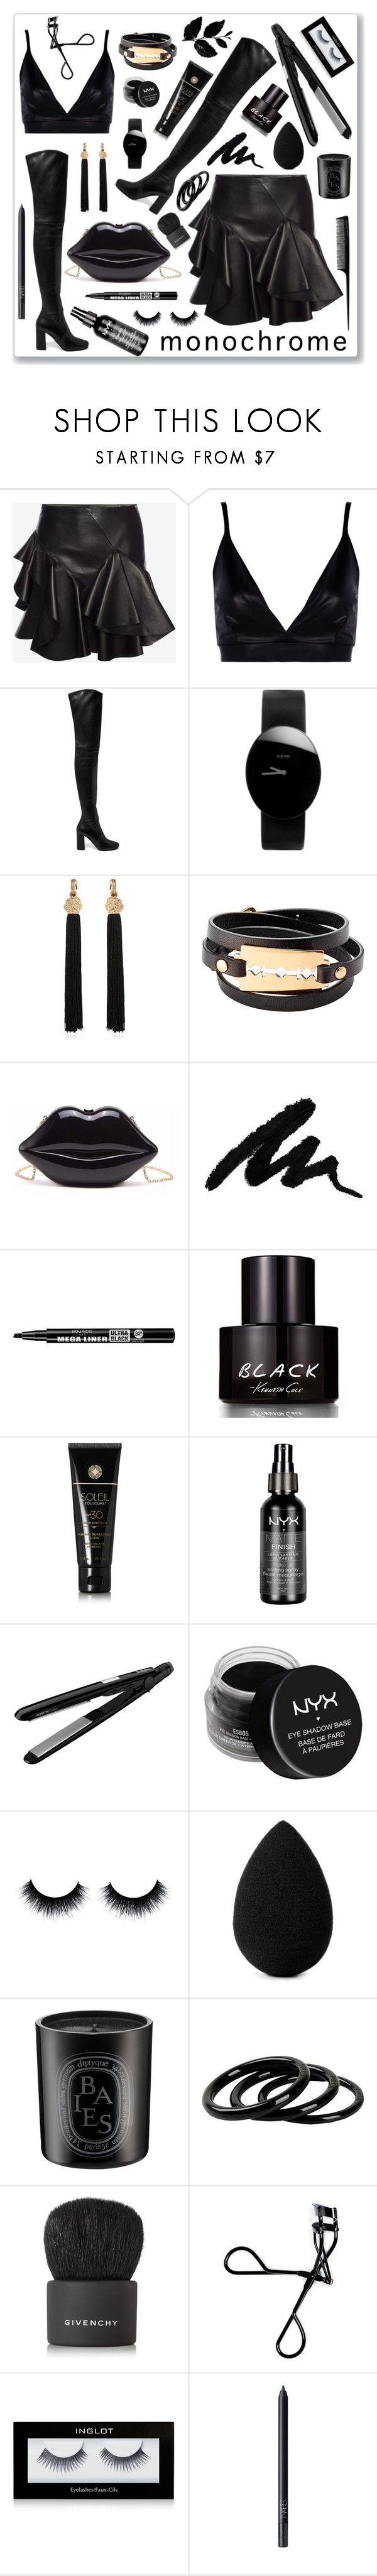 """""""Mono Black"""" by hellodollface ❤ liked on Polyvore featuring Alexander McQueen, Boohoo, Prada, Rado, Yves Saint Laurent, McQ by Alexander McQueen, Bourjois, Kenneth Cole, Soleil Toujours and Charlotte Russe"""